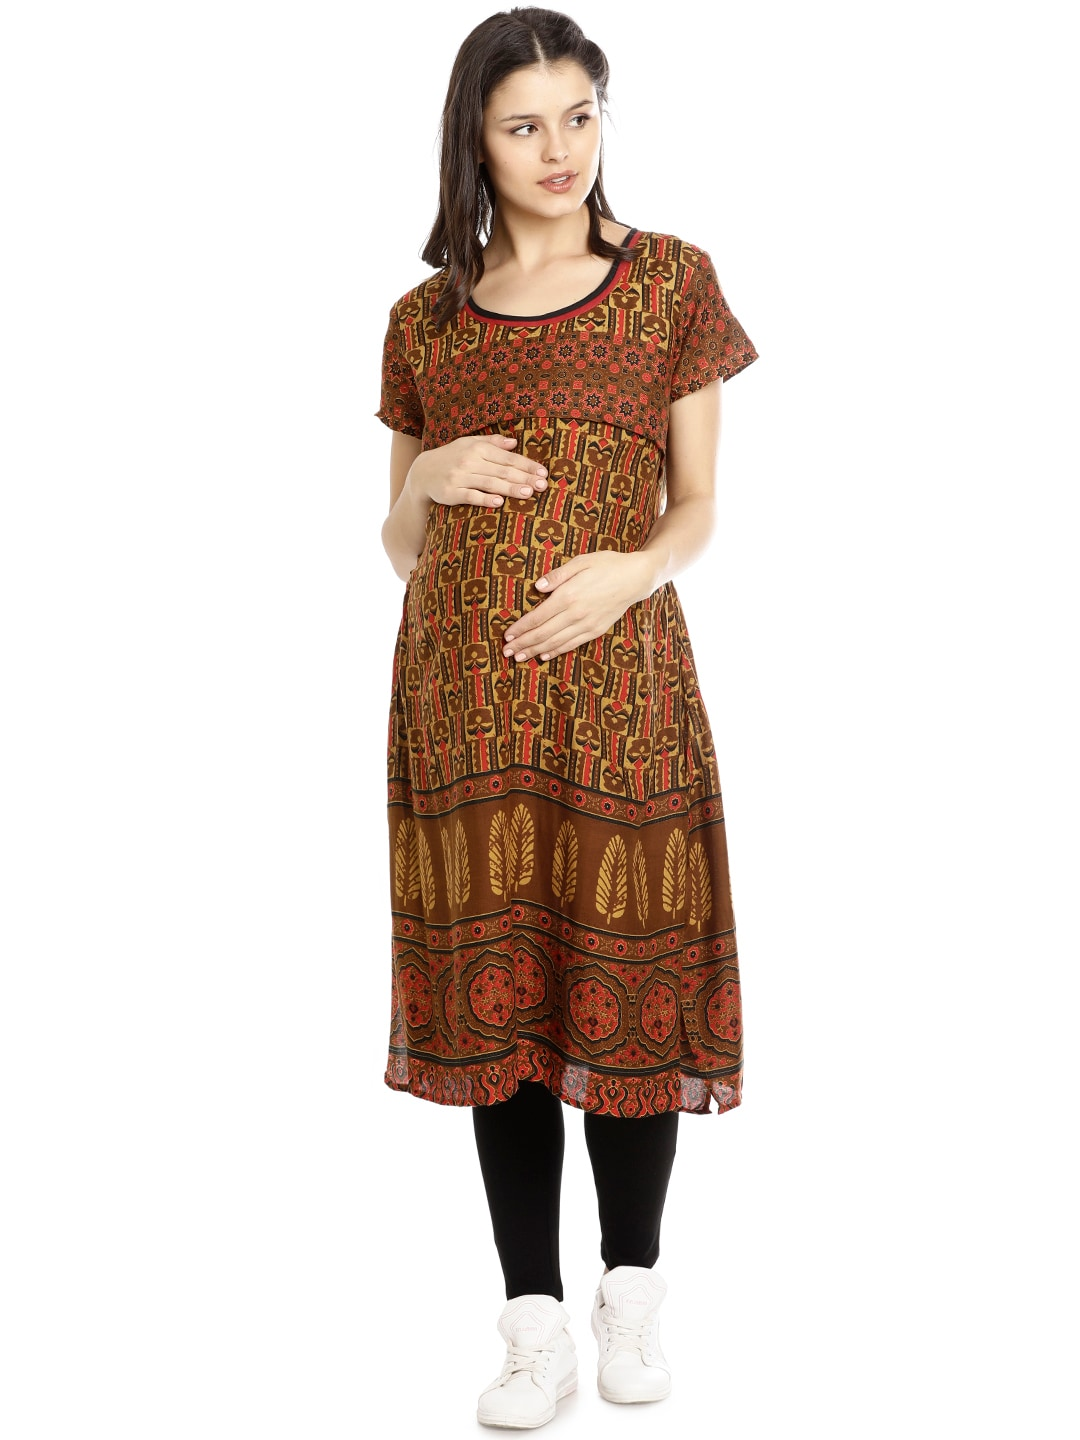 b8595a29c4 Maternity - Buy Maternity online in India